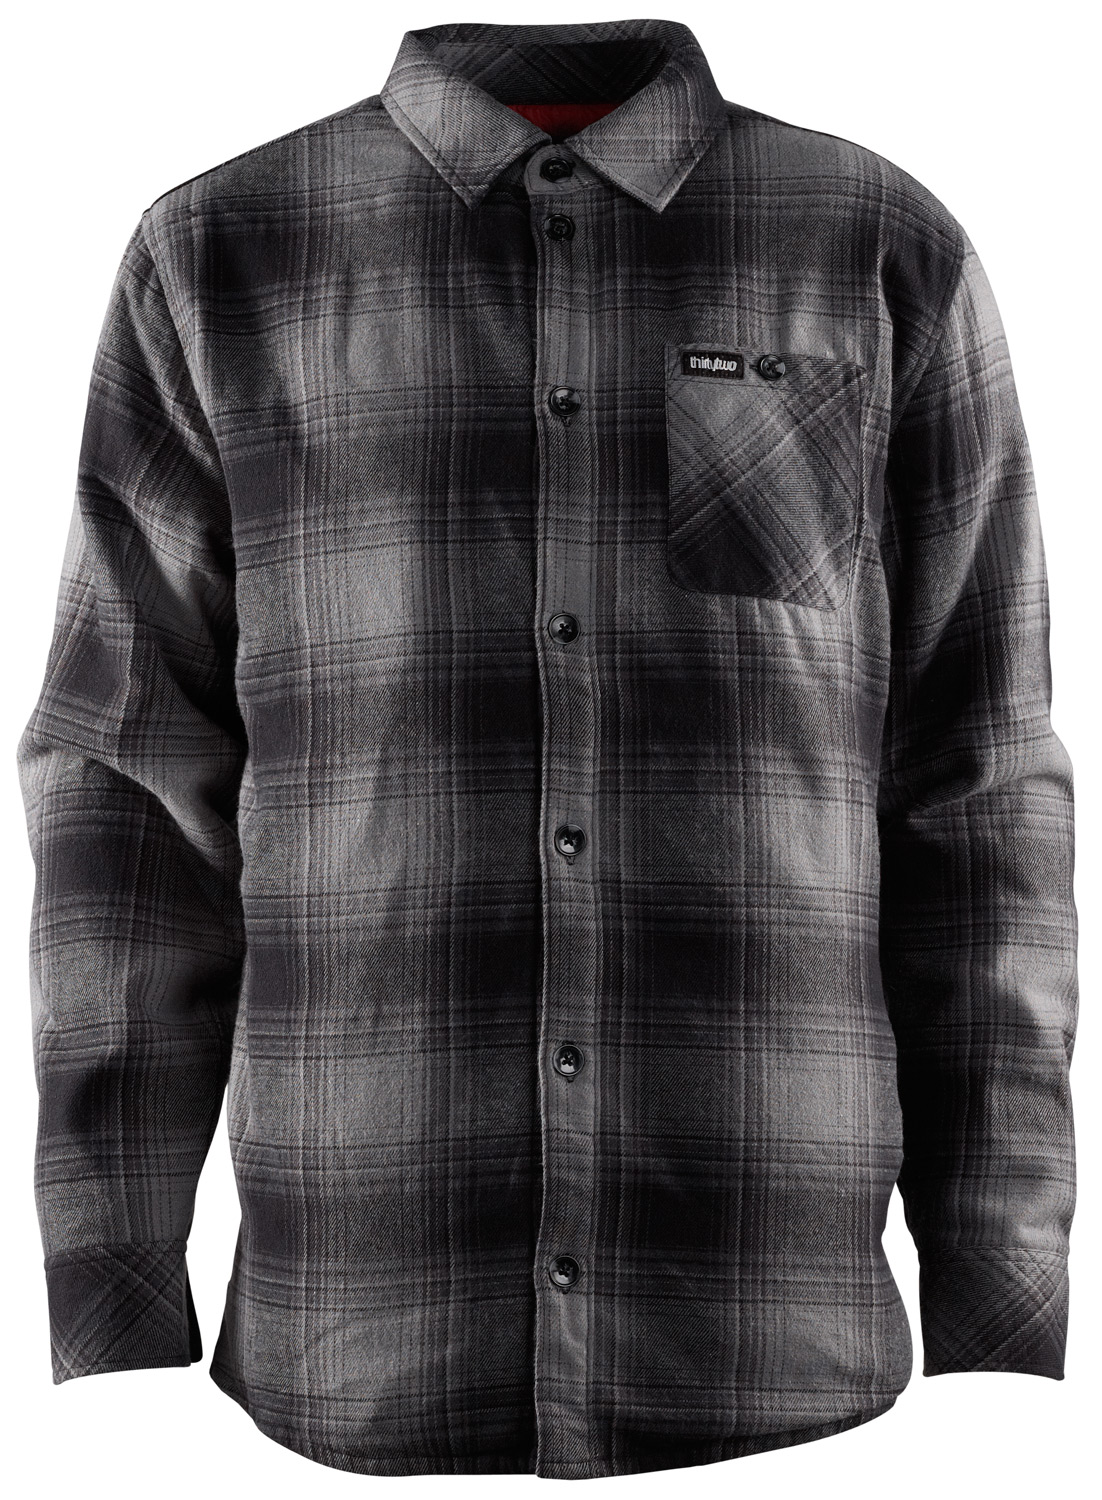 Key Features of the 32 - Thirty Two Grizzley Flannel: Yarn dyed flannel Quilted insulation - $61.95